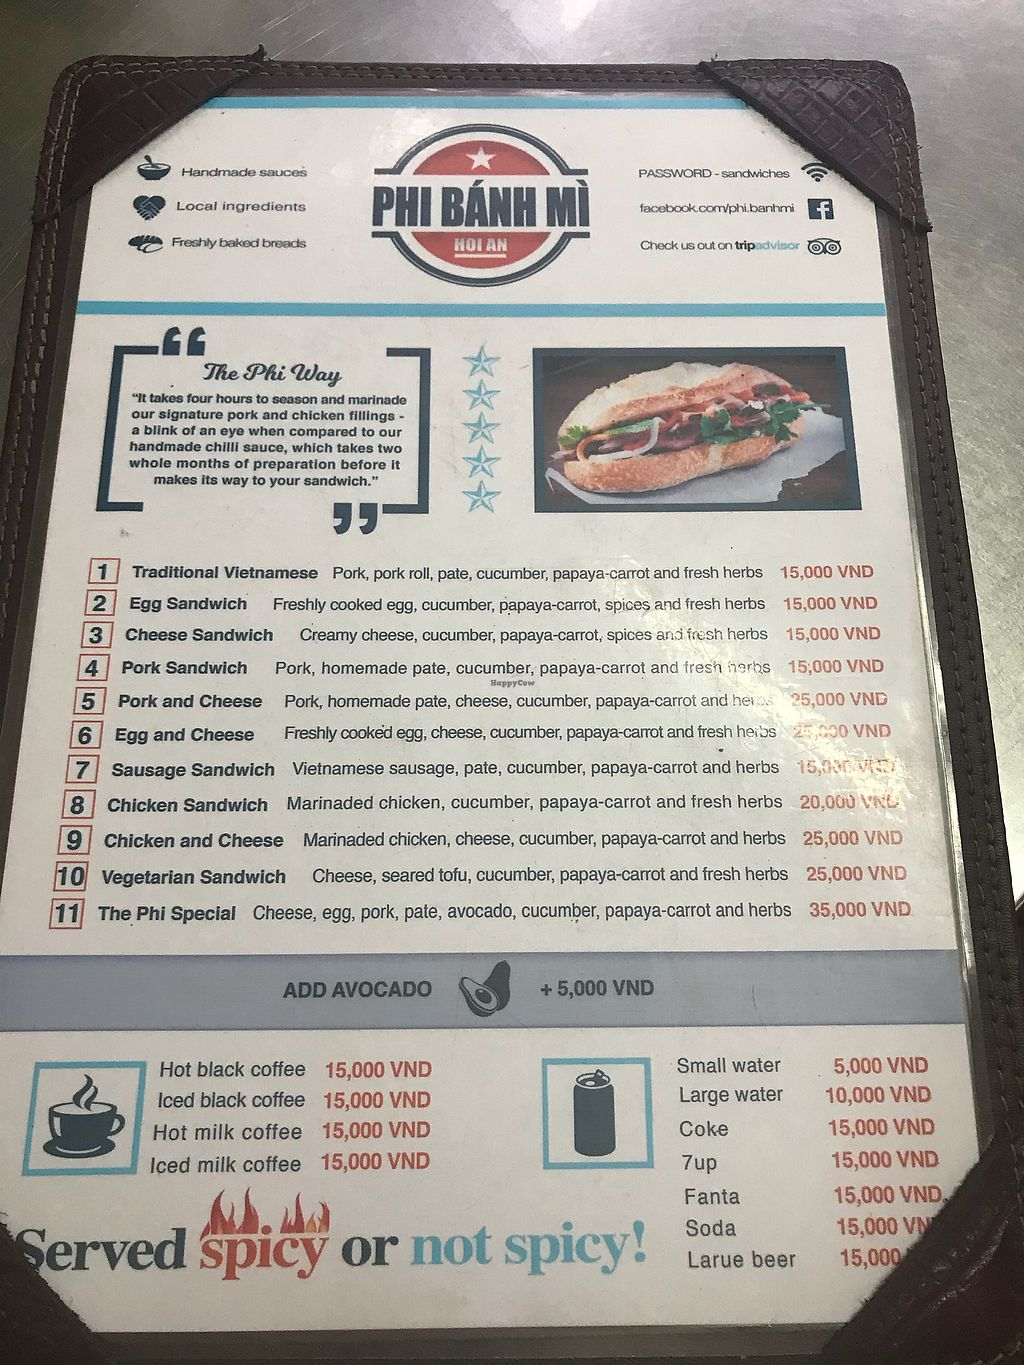 """Photo of Phi Banh Mi  by <a href=""""/members/profile/AnnaLevshin"""">AnnaLevshin</a> <br/>Menu <br/> April 15, 2018  - <a href='/contact/abuse/image/98895/386168'>Report</a>"""